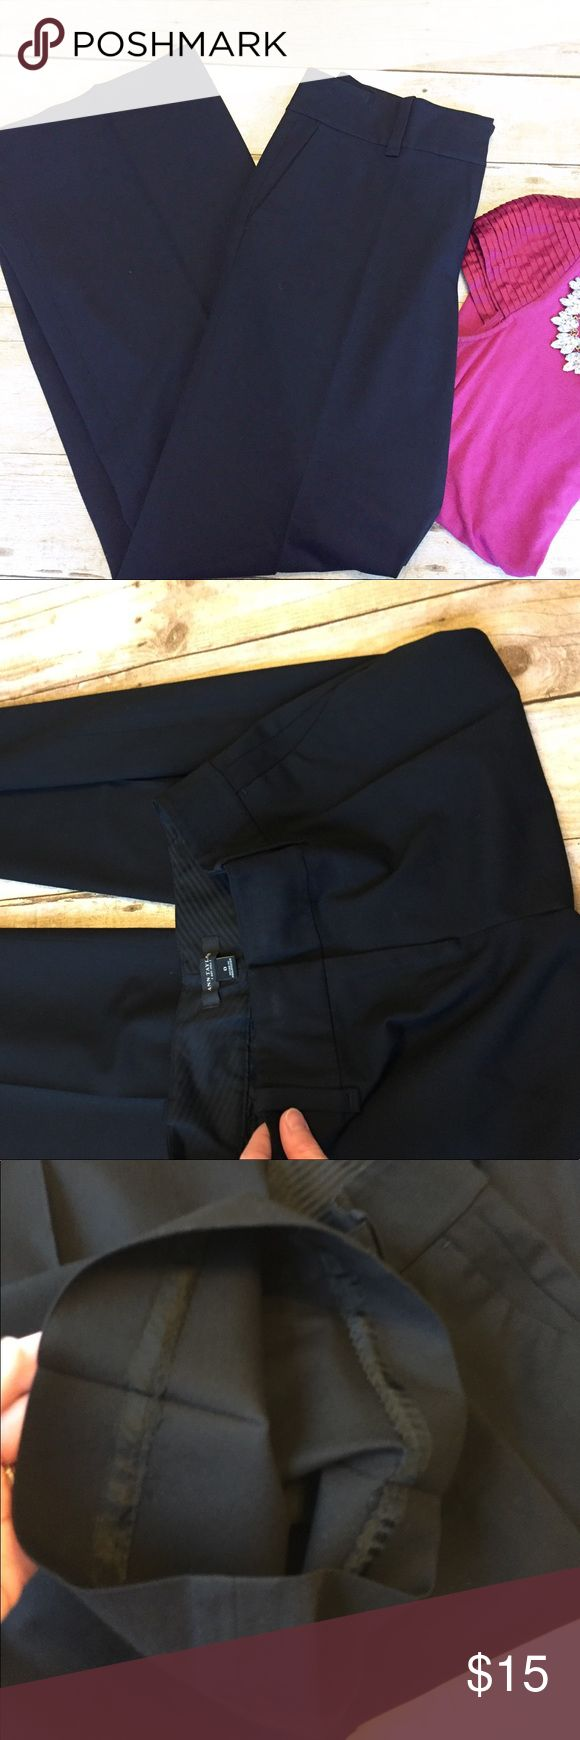 """Ann Taylor Dress Pants Suit Separate Size 0 black Great condition, smoke free home. Ann Taylor dress pants. Straight leg, 10.5"""" across leg opening. 30"""" inseam. 10.5"""" rise. No holes or stains. Not lined. Ann Taylor Pants Straight Leg"""